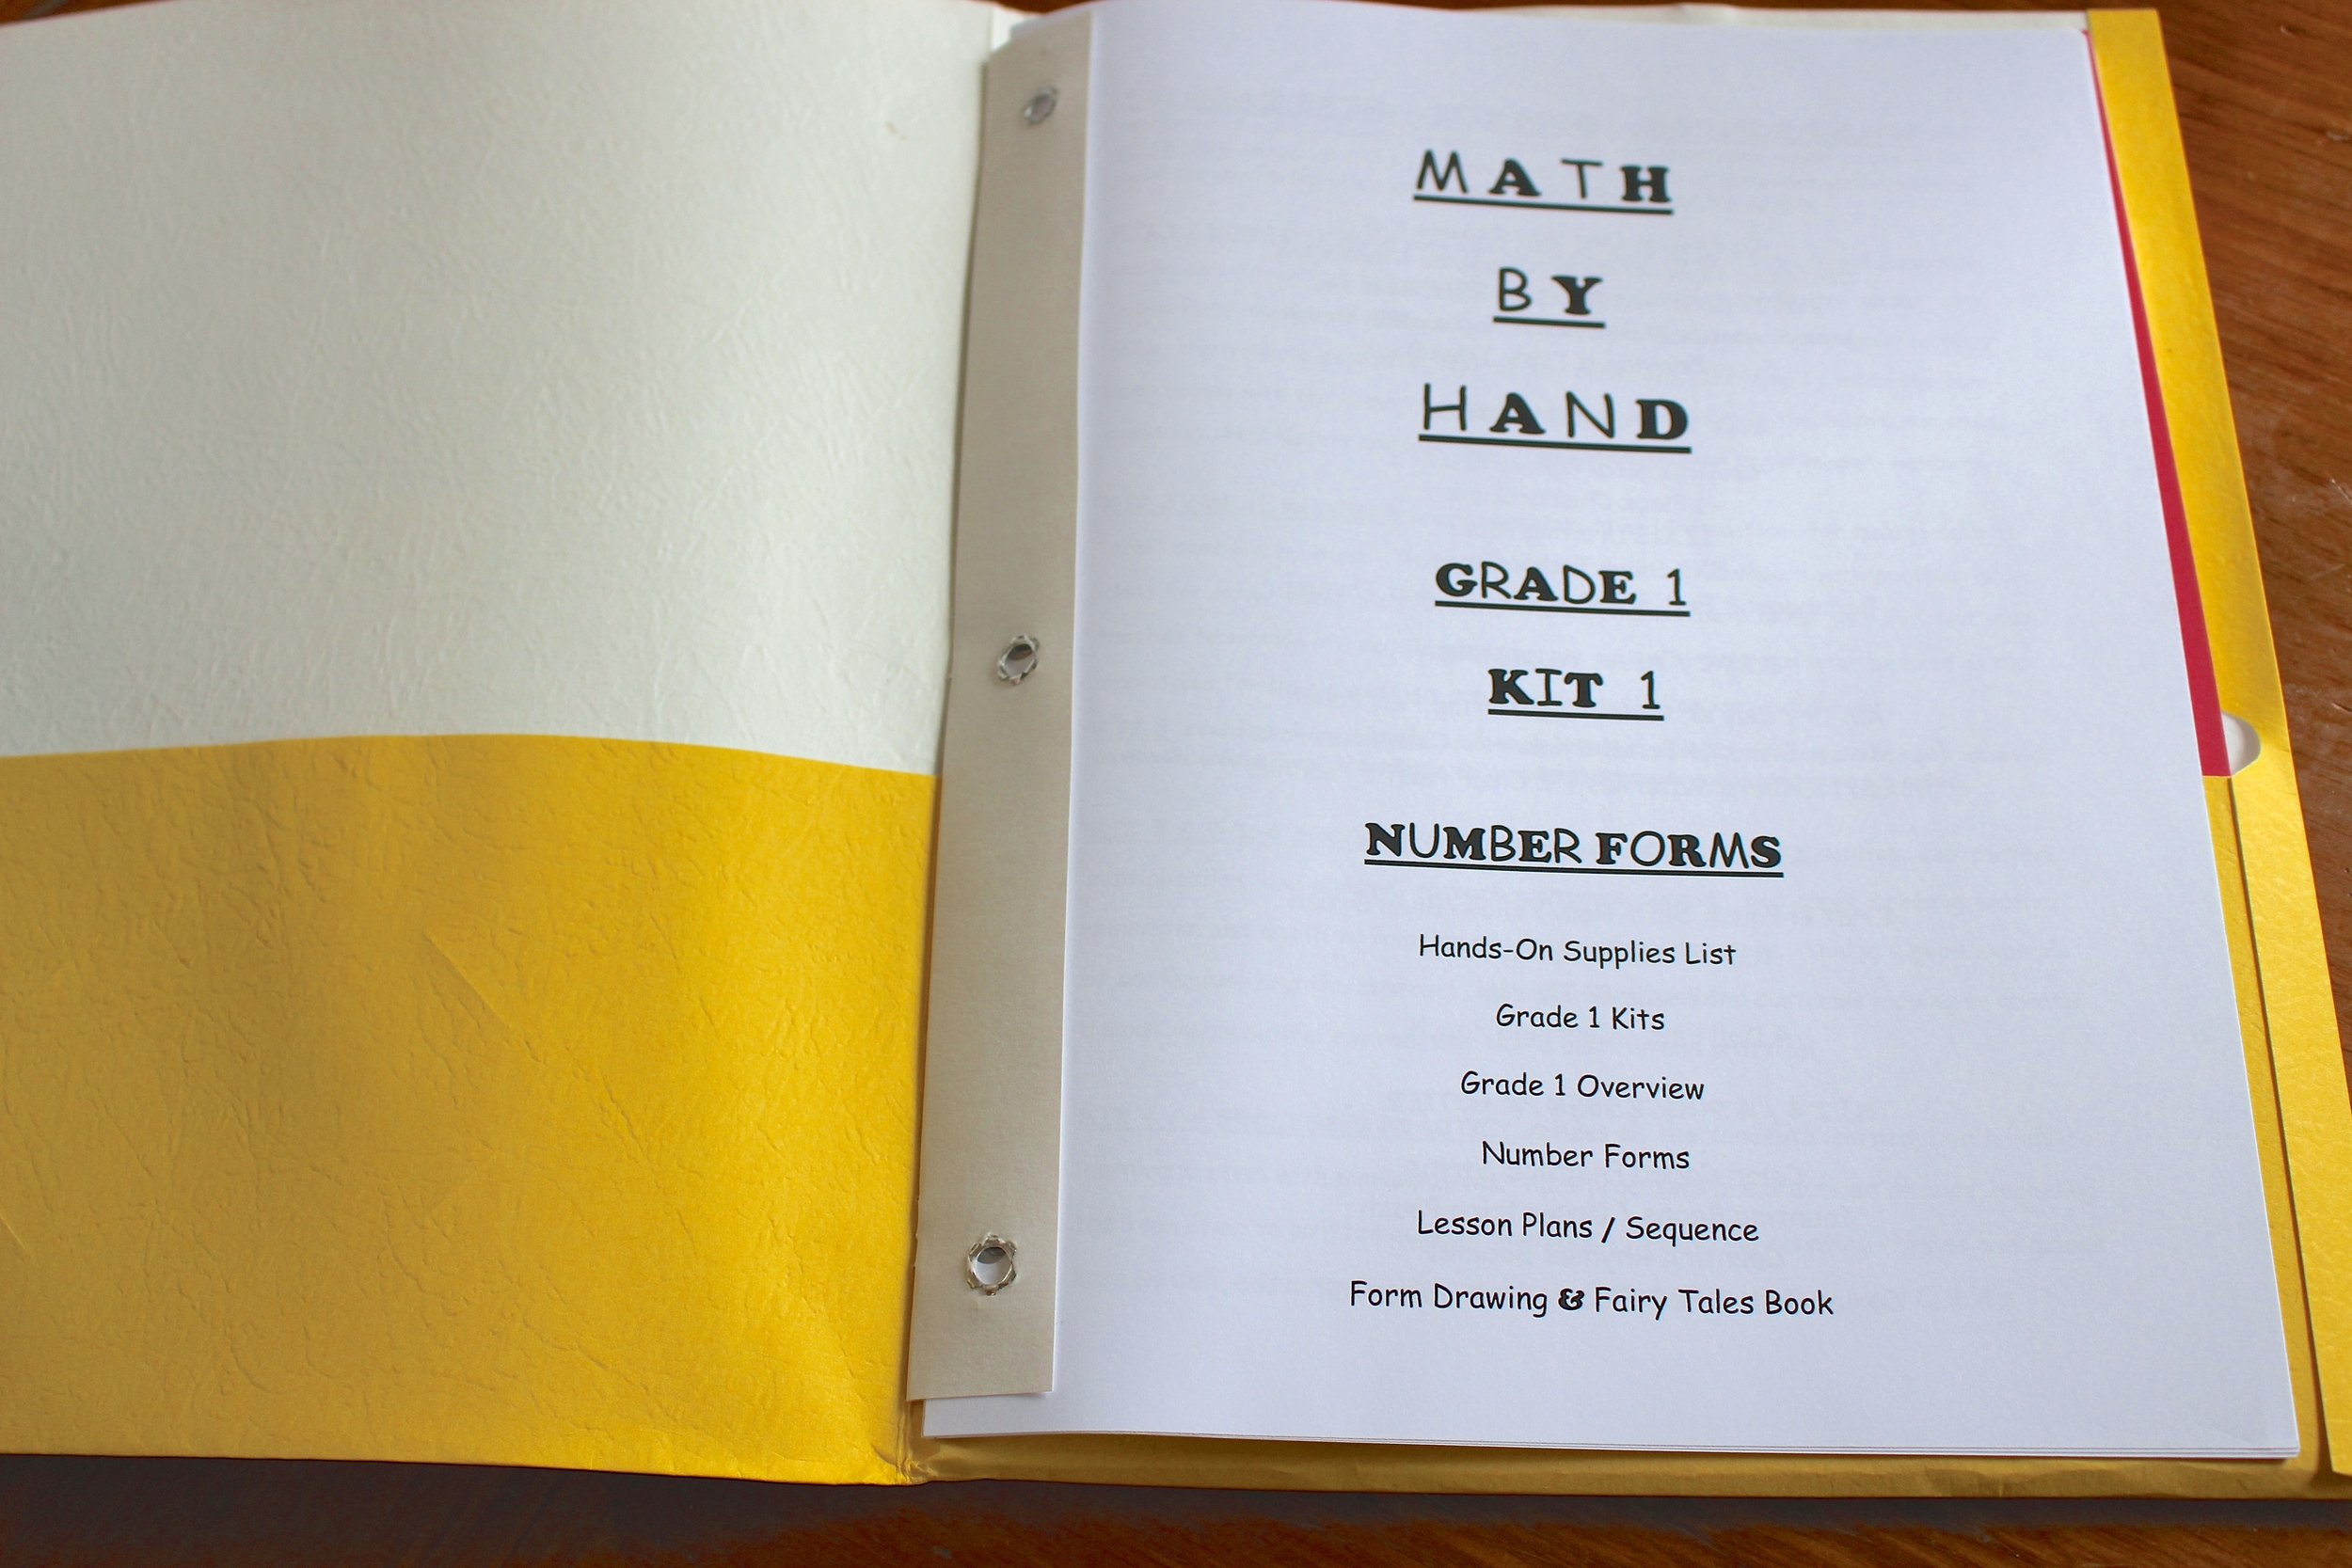 The title page from the Math By Hand: Number Forms guide